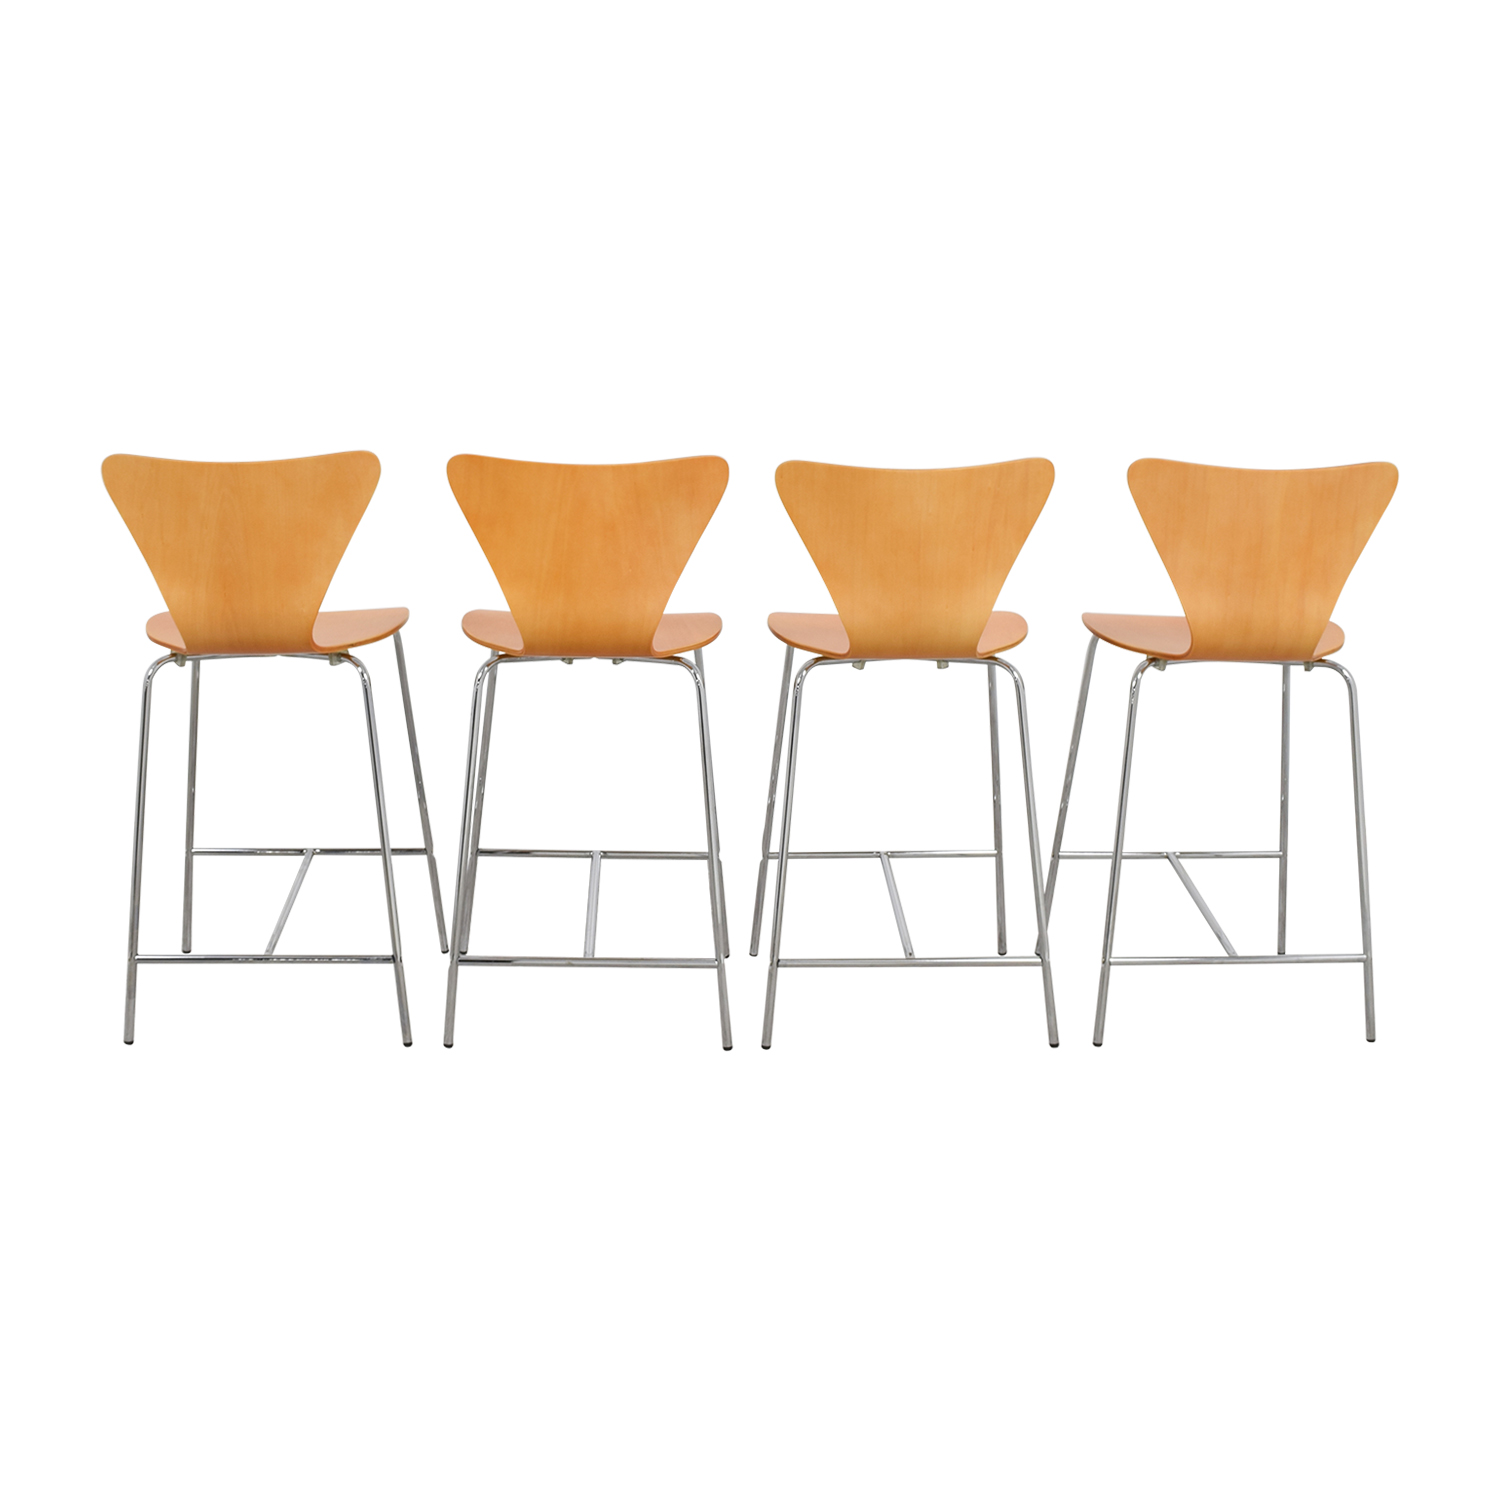 ... InMod InMod Tendy C Counter Chair Natural Second Hand ...